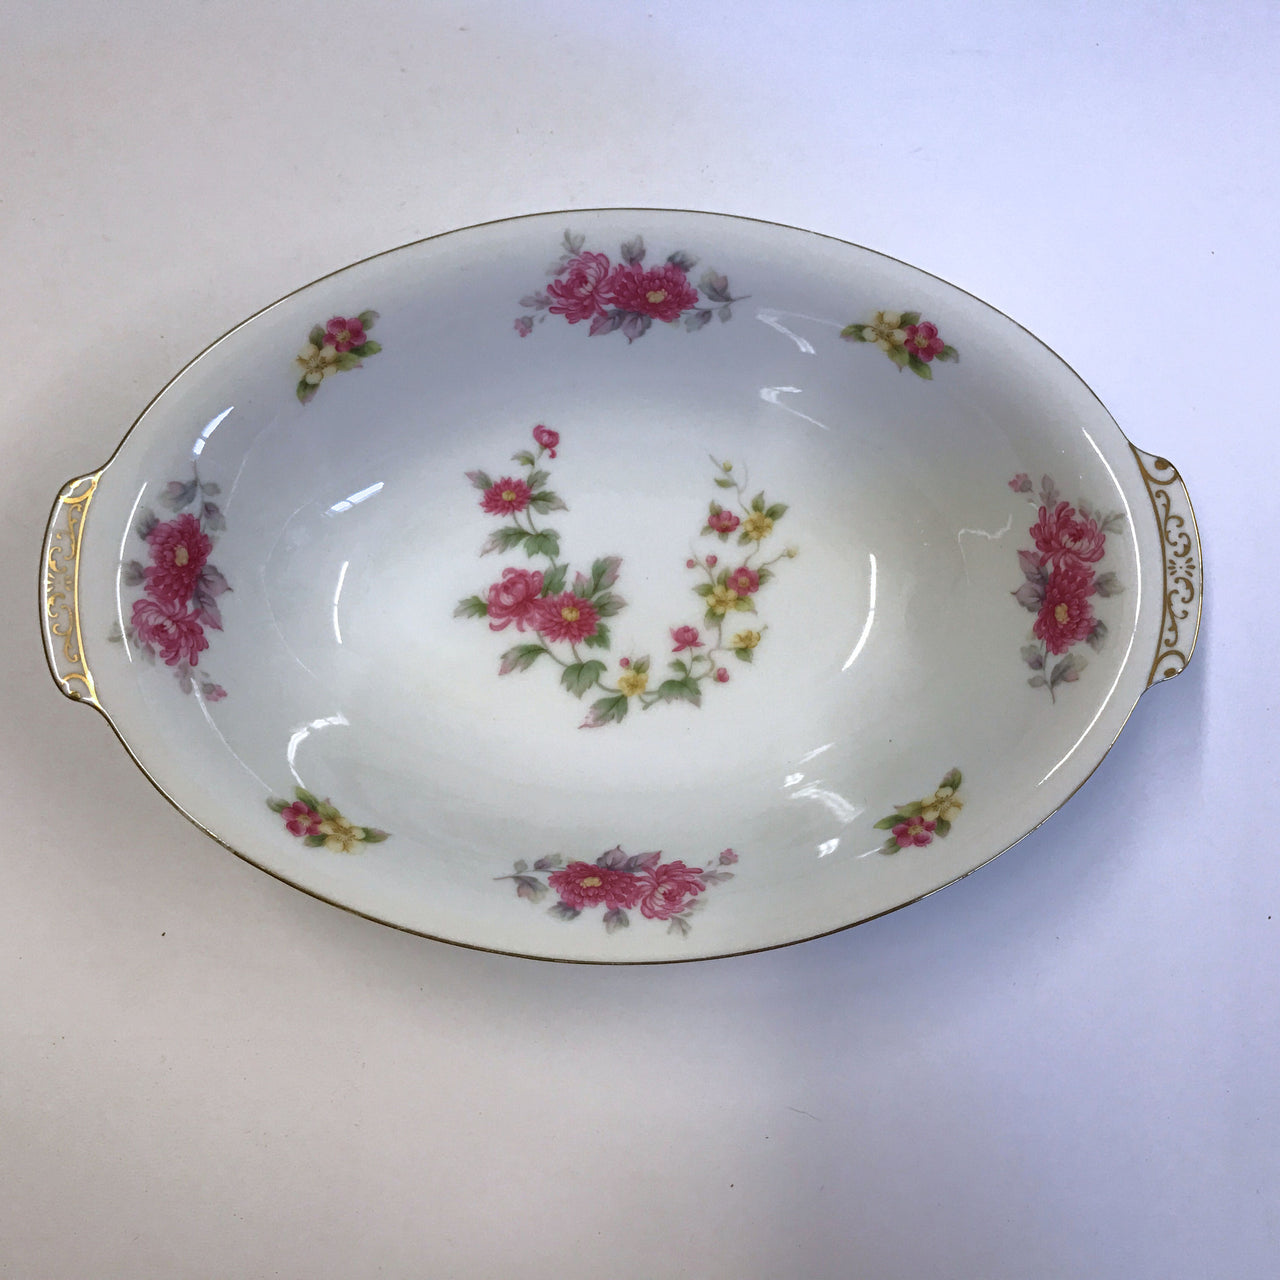 Cherry China Charmaine Oval Serving Bowl with Handles